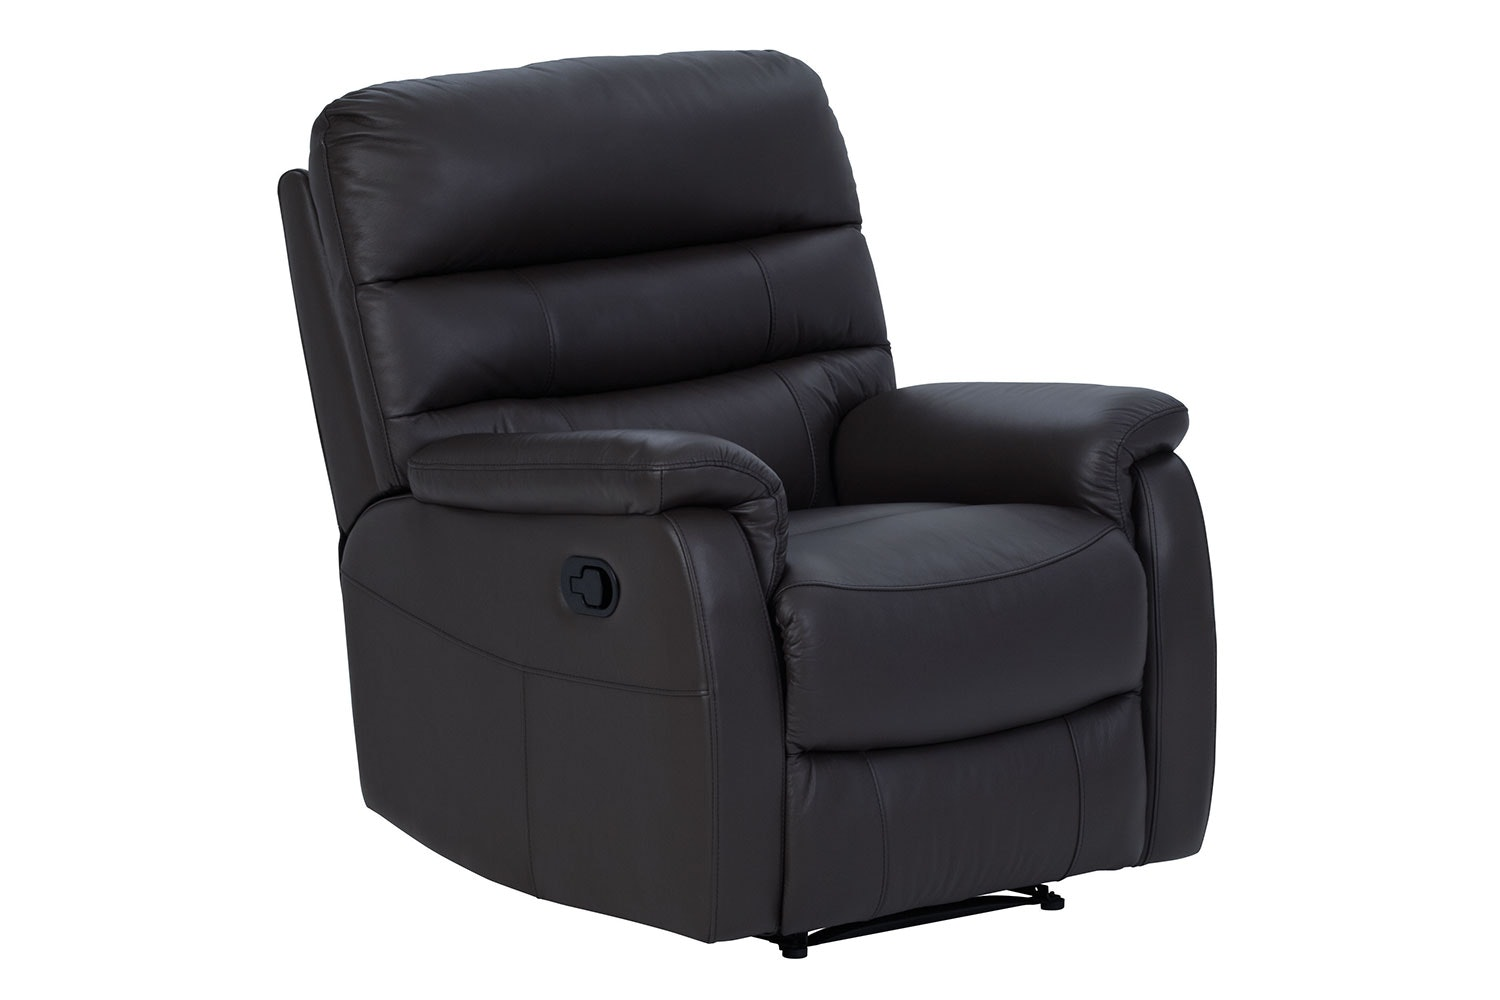 Luna Leather Recliner Chair by Vivin  sc 1 st  Harvey Norman & Luna Leather Recliner Chair by Vivin   Harvey Norman New Zealand islam-shia.org